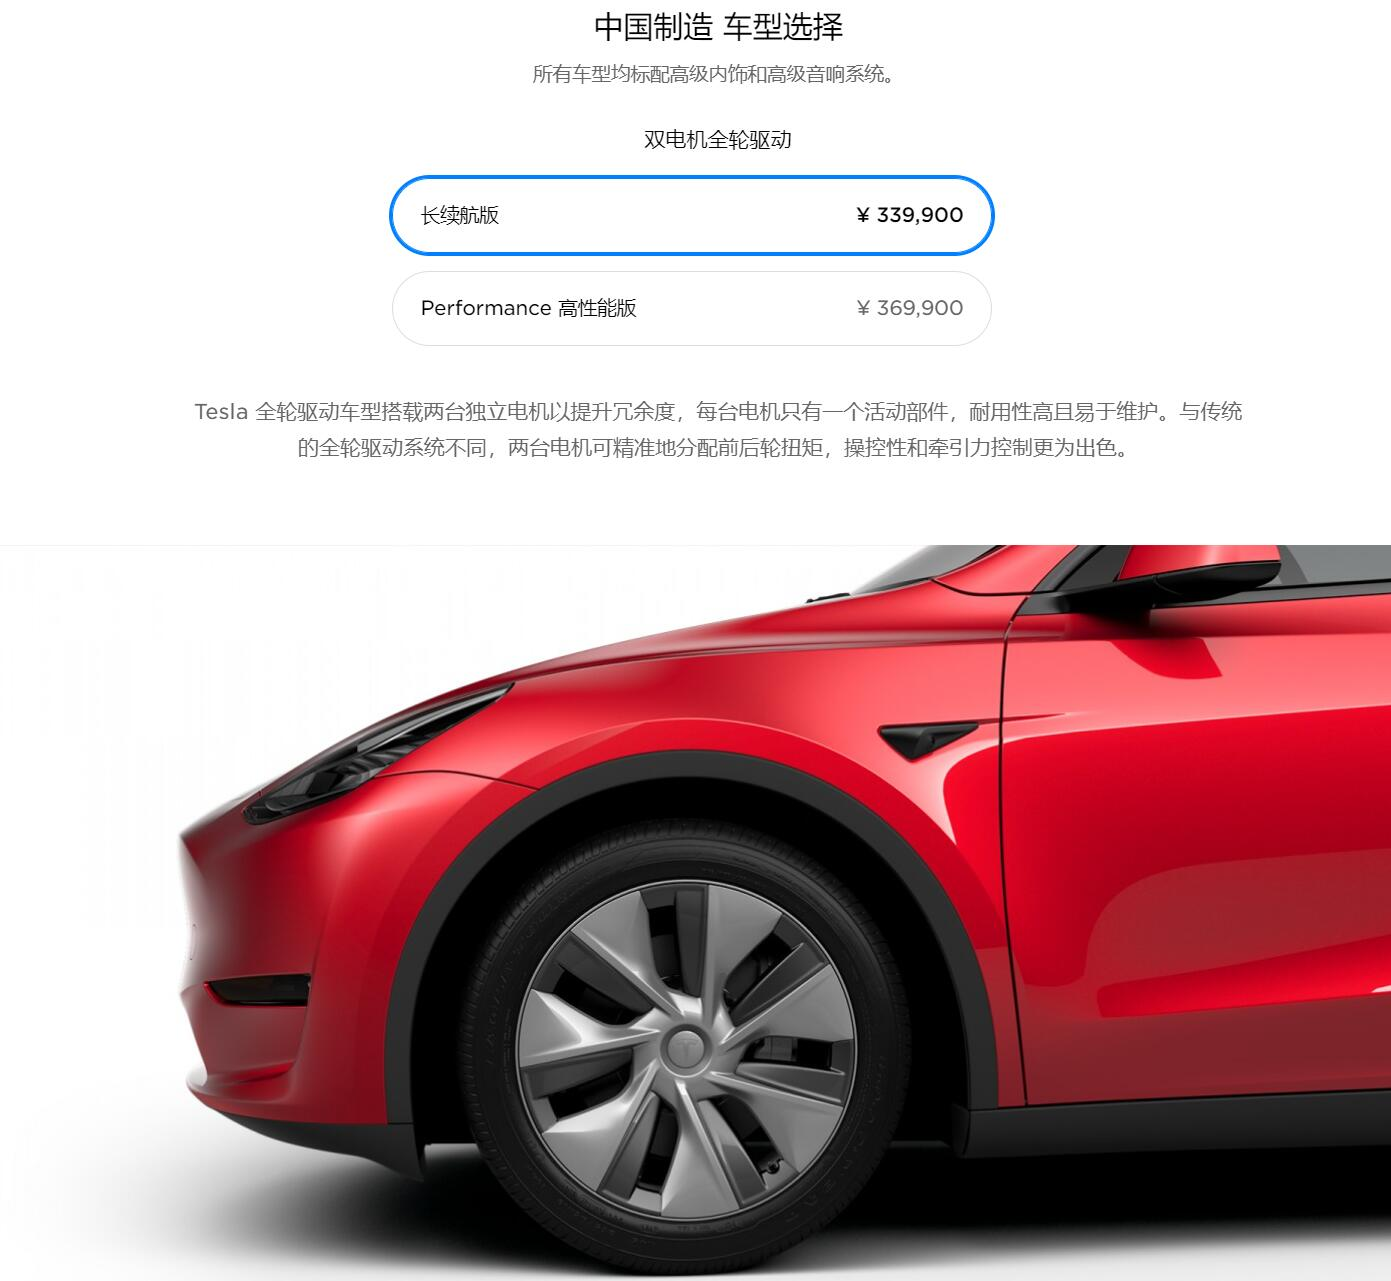 China-made Tesla Model Y goes on sale, price from about $52,000-CnTechPost